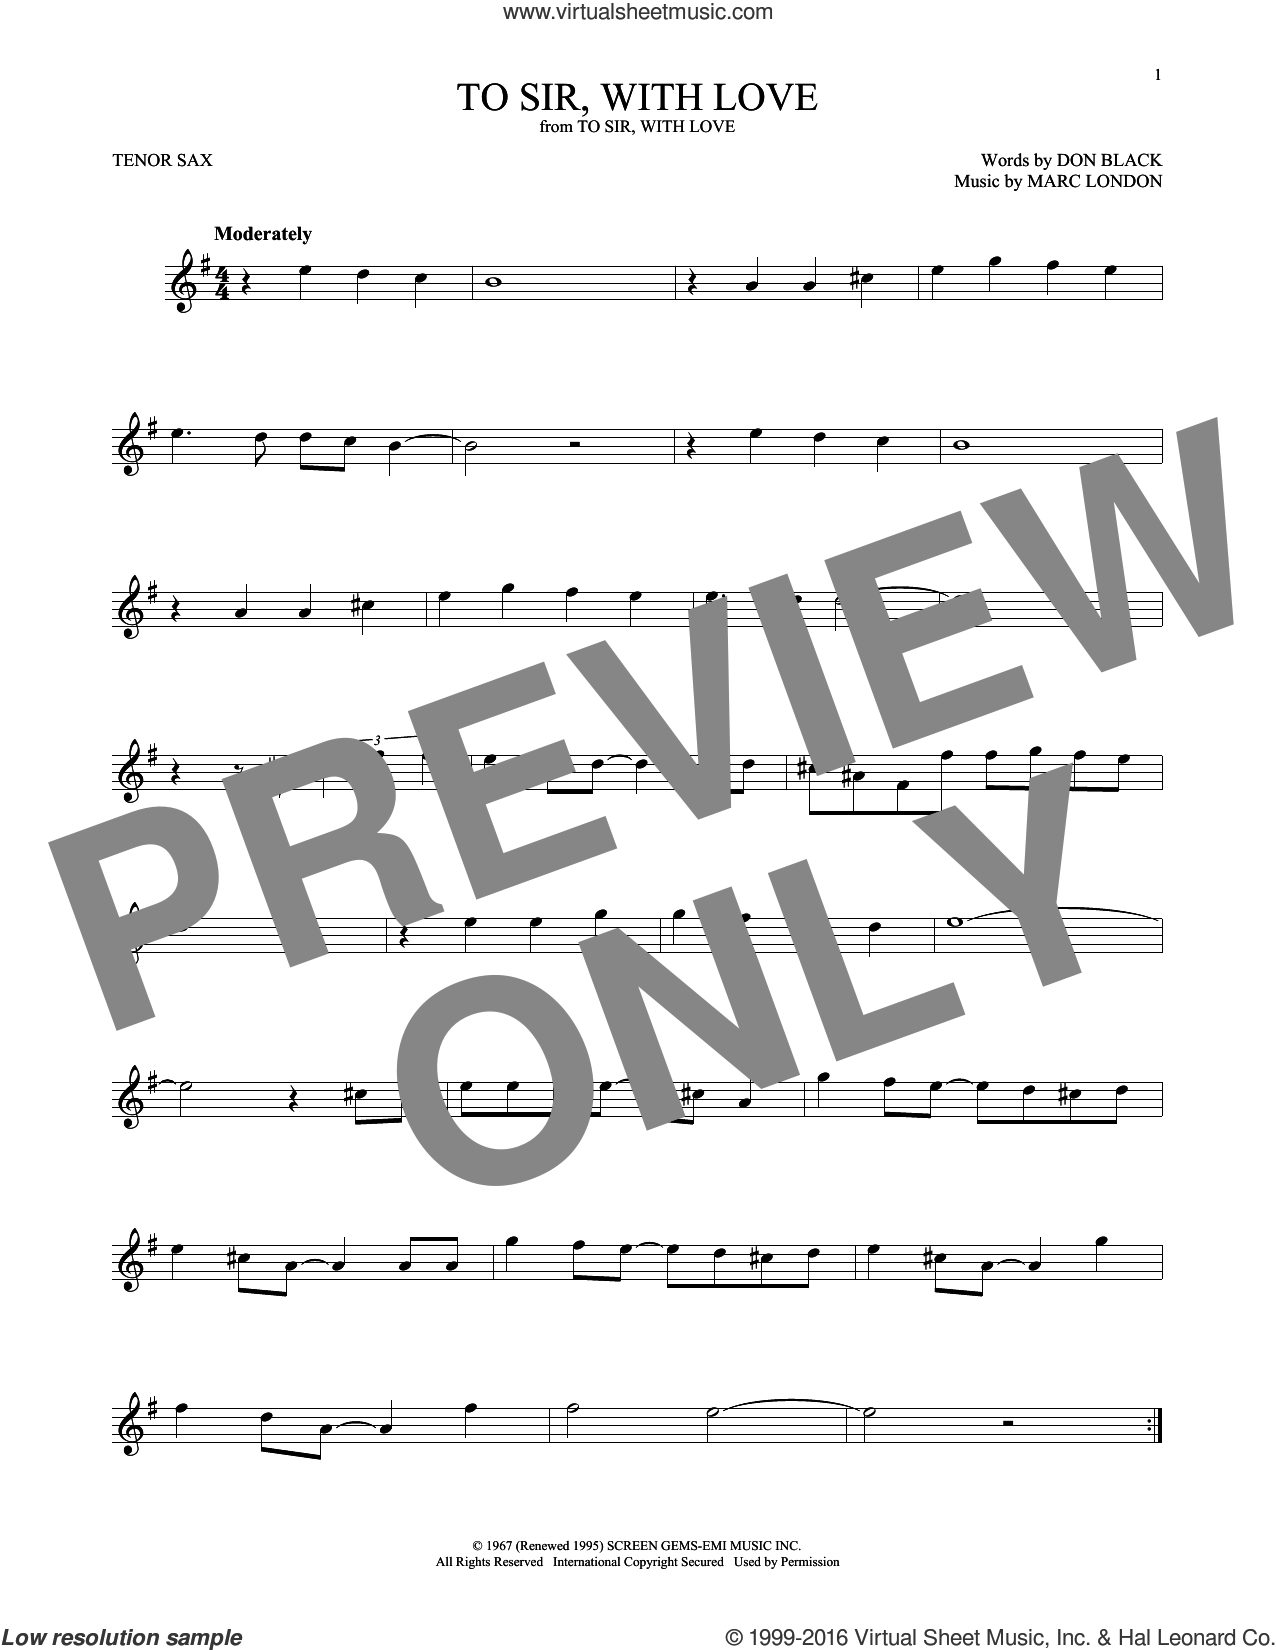 To Sir, With Love sheet music for tenor saxophone solo ( Sax) by Marc London, Lulu and Don Black. Score Image Preview.